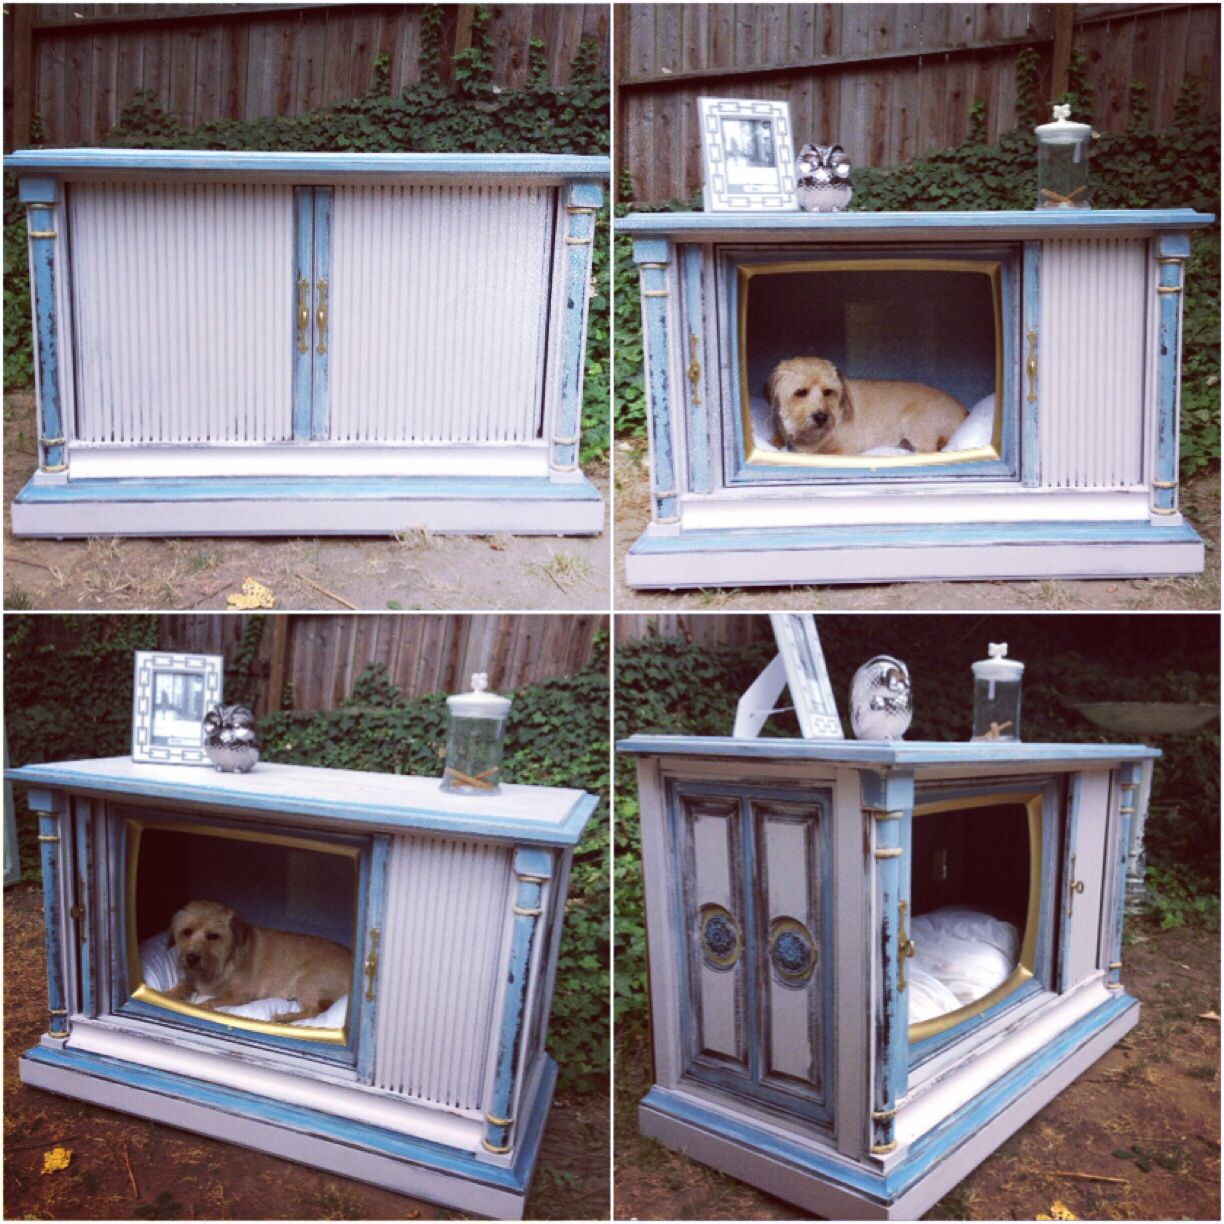 Old Tv Console Turned Dog Bed. Doggie Bed, Diy Dog Bed, Painted,  Distressed, Shabby Chic, Vintage